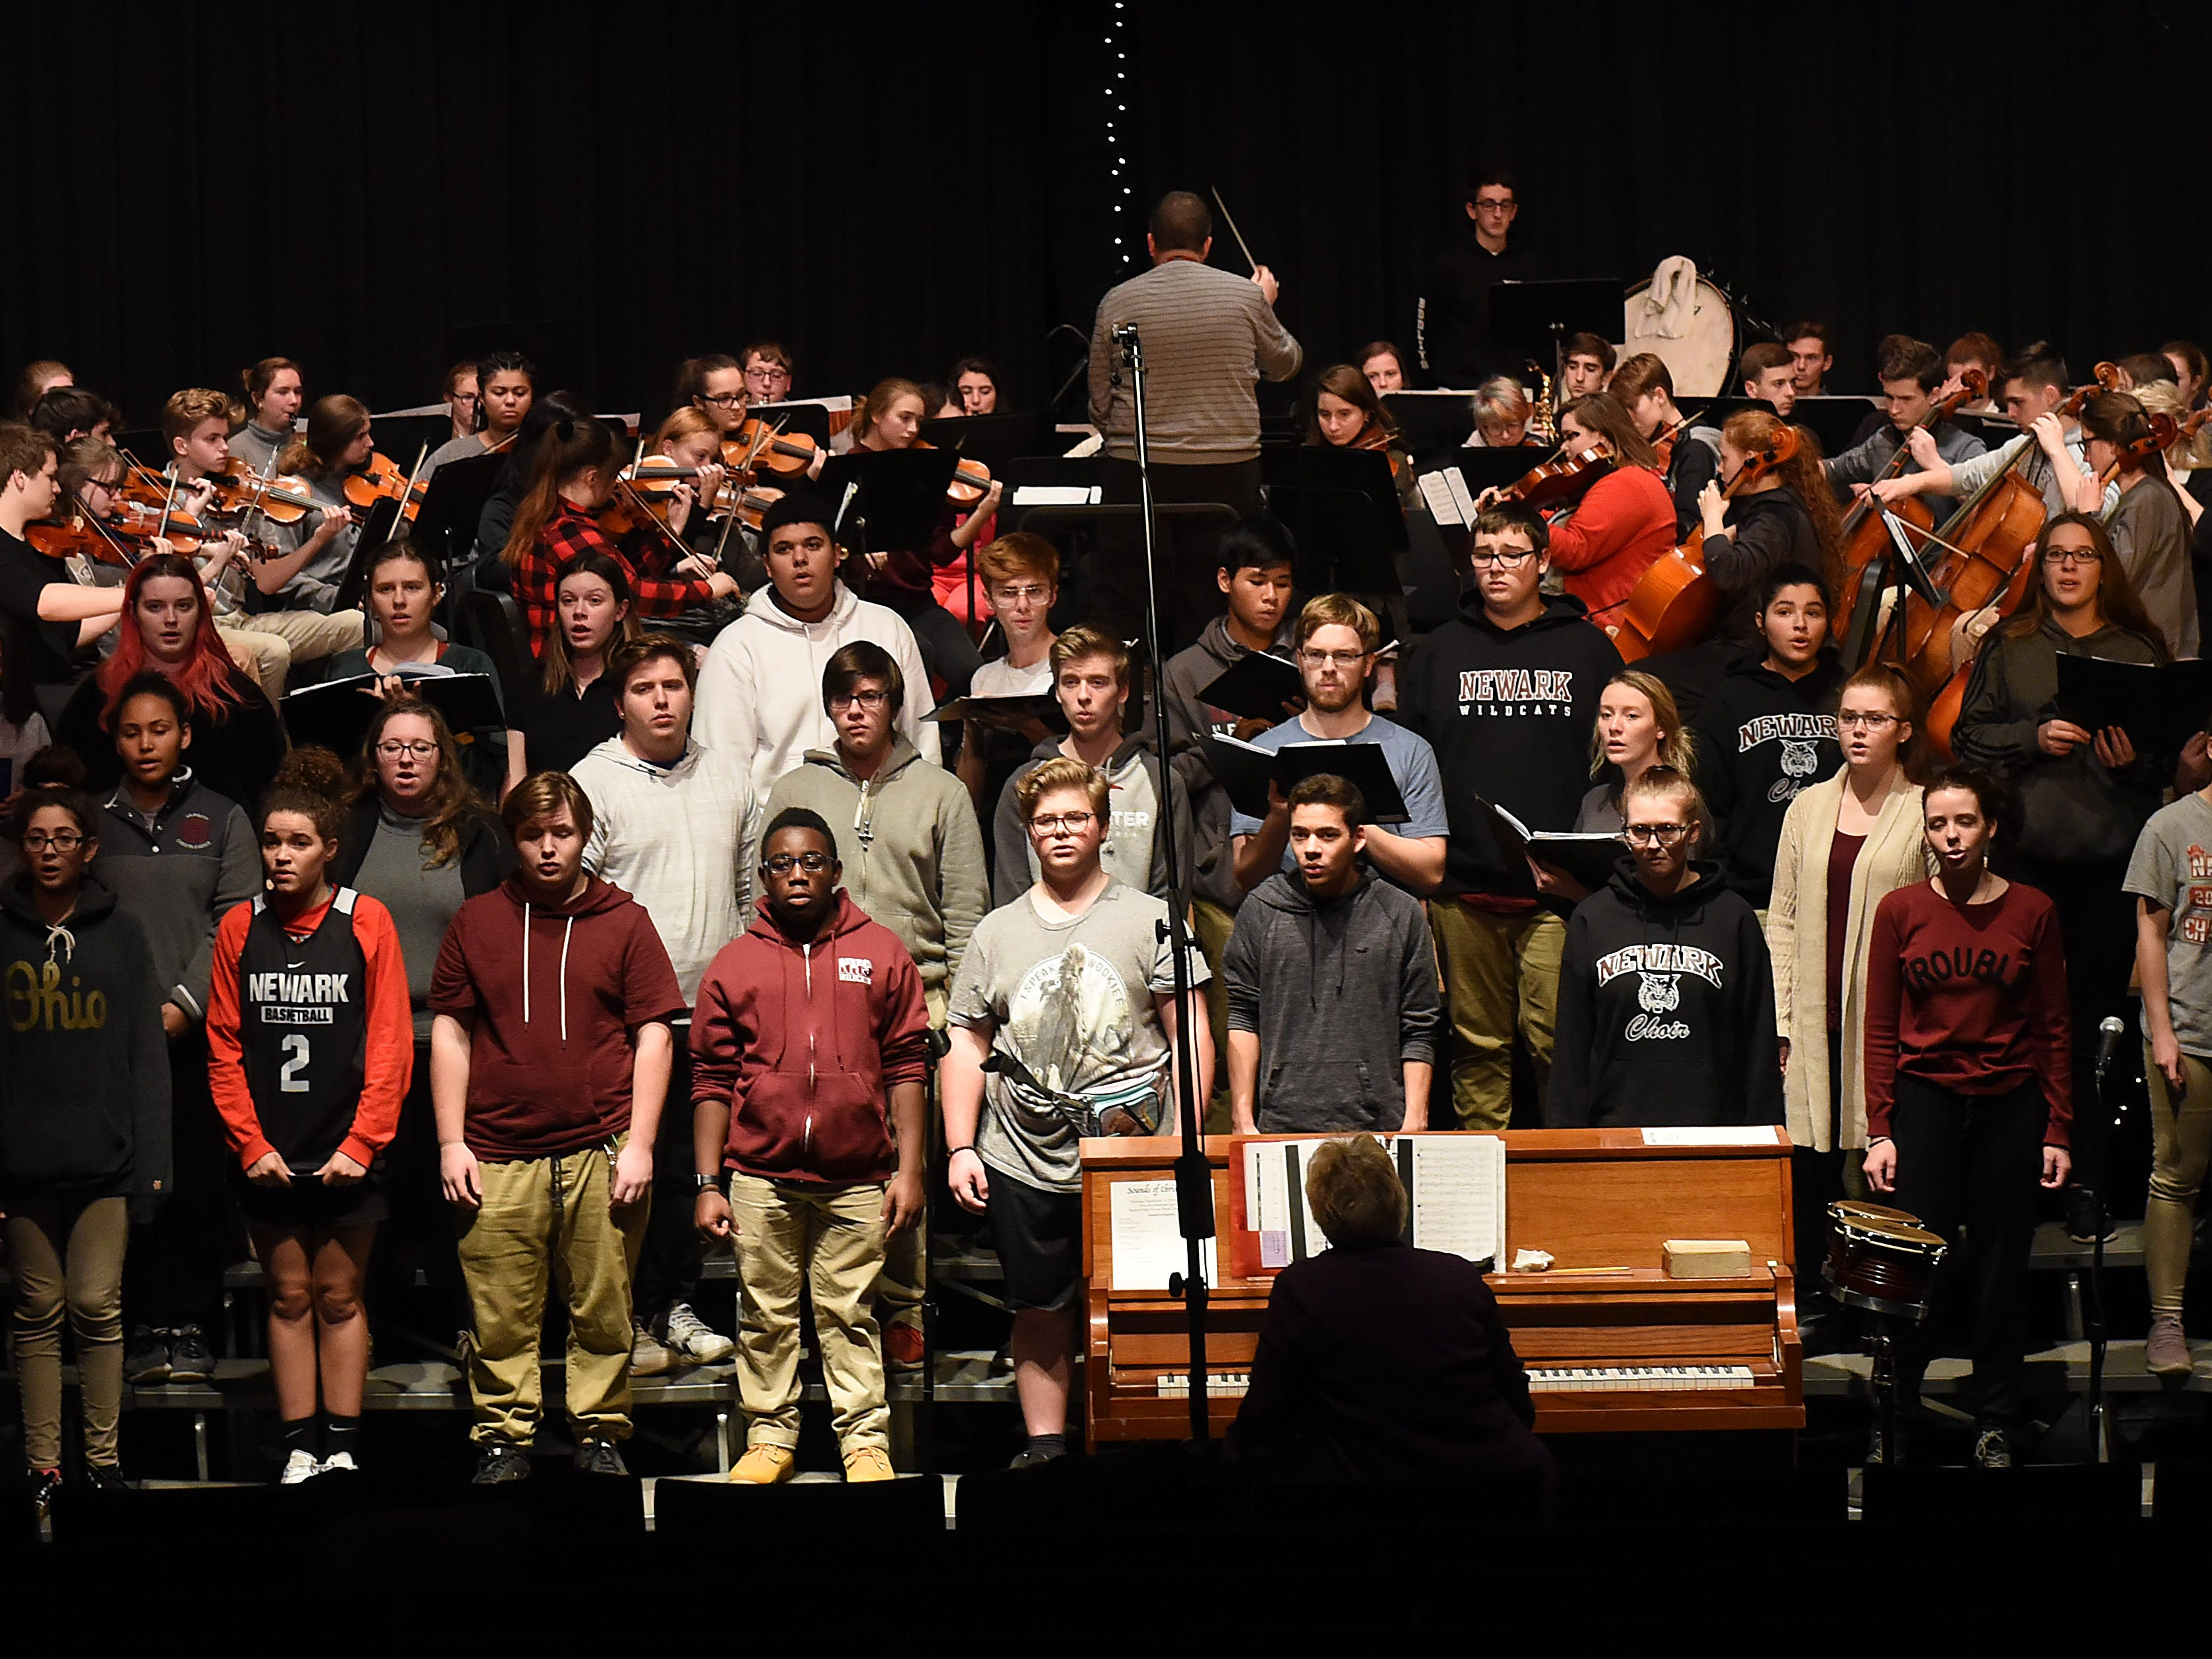 """The combined Newark High School band, choir, and orchestra rehearse for their Christmas concert at 7 p.m. on Thursday, Dec. 13, 2018 at the high school's Lawrence E. Griffin Performing Arts Center. The combined ensemble will perform Franz Gruber's classic carol """"Silent Night"""", which was written 200 years ago this Christmas, as part biggest concert performance of the year. Tickets are available at the door;  $6 for adult and $4 for students and seniors."""